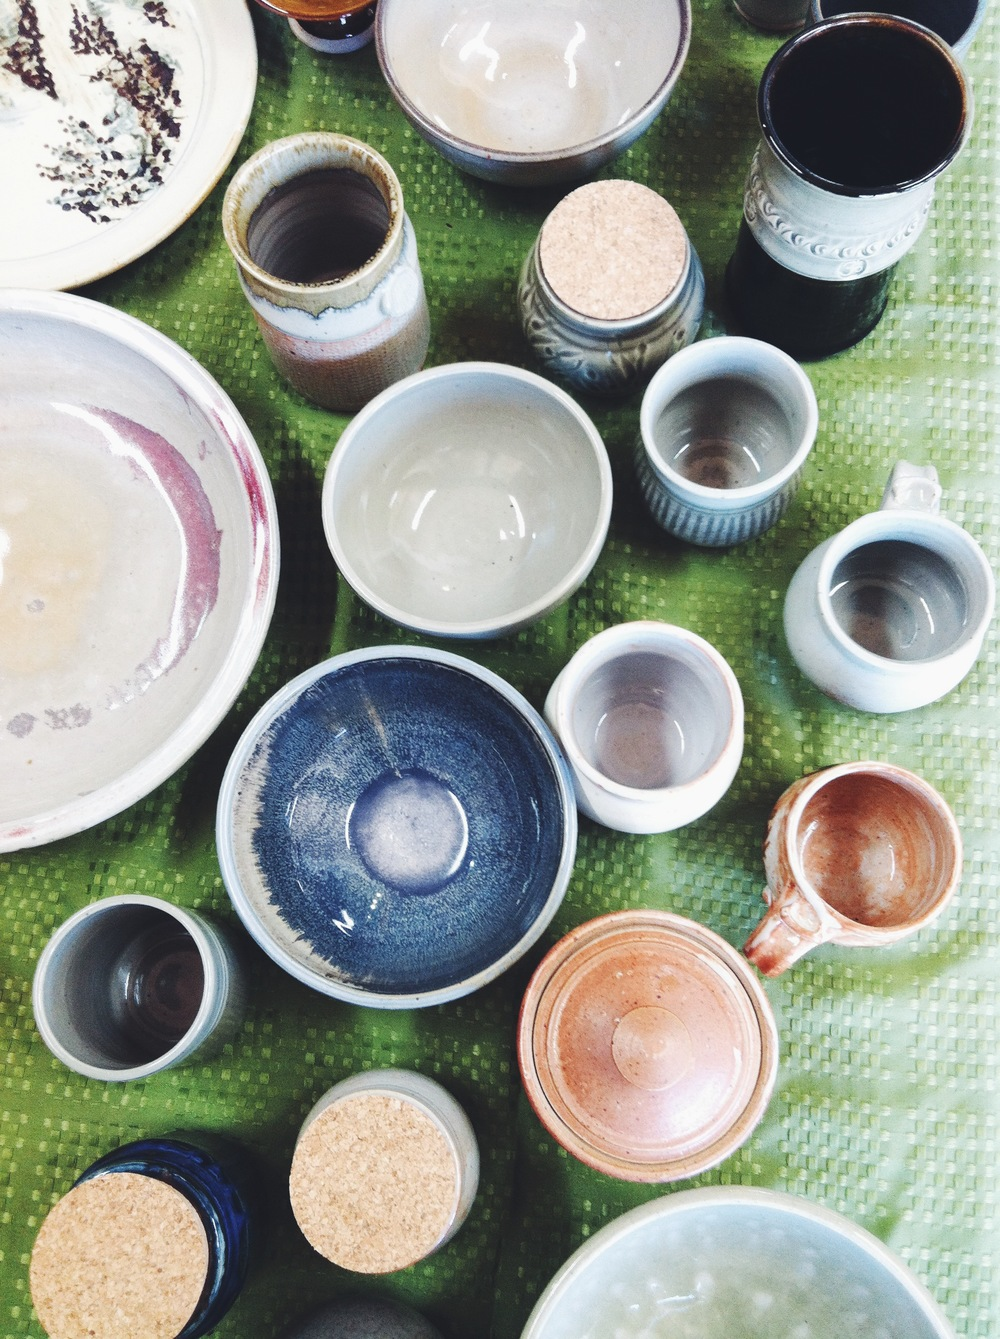 Hand crafted pottery by Ganesh. Mugs, salad bowls, jars with natural cork lids, serving platters, lidded baking dishes, incense holders, traditional Japanese rice jars, and more.